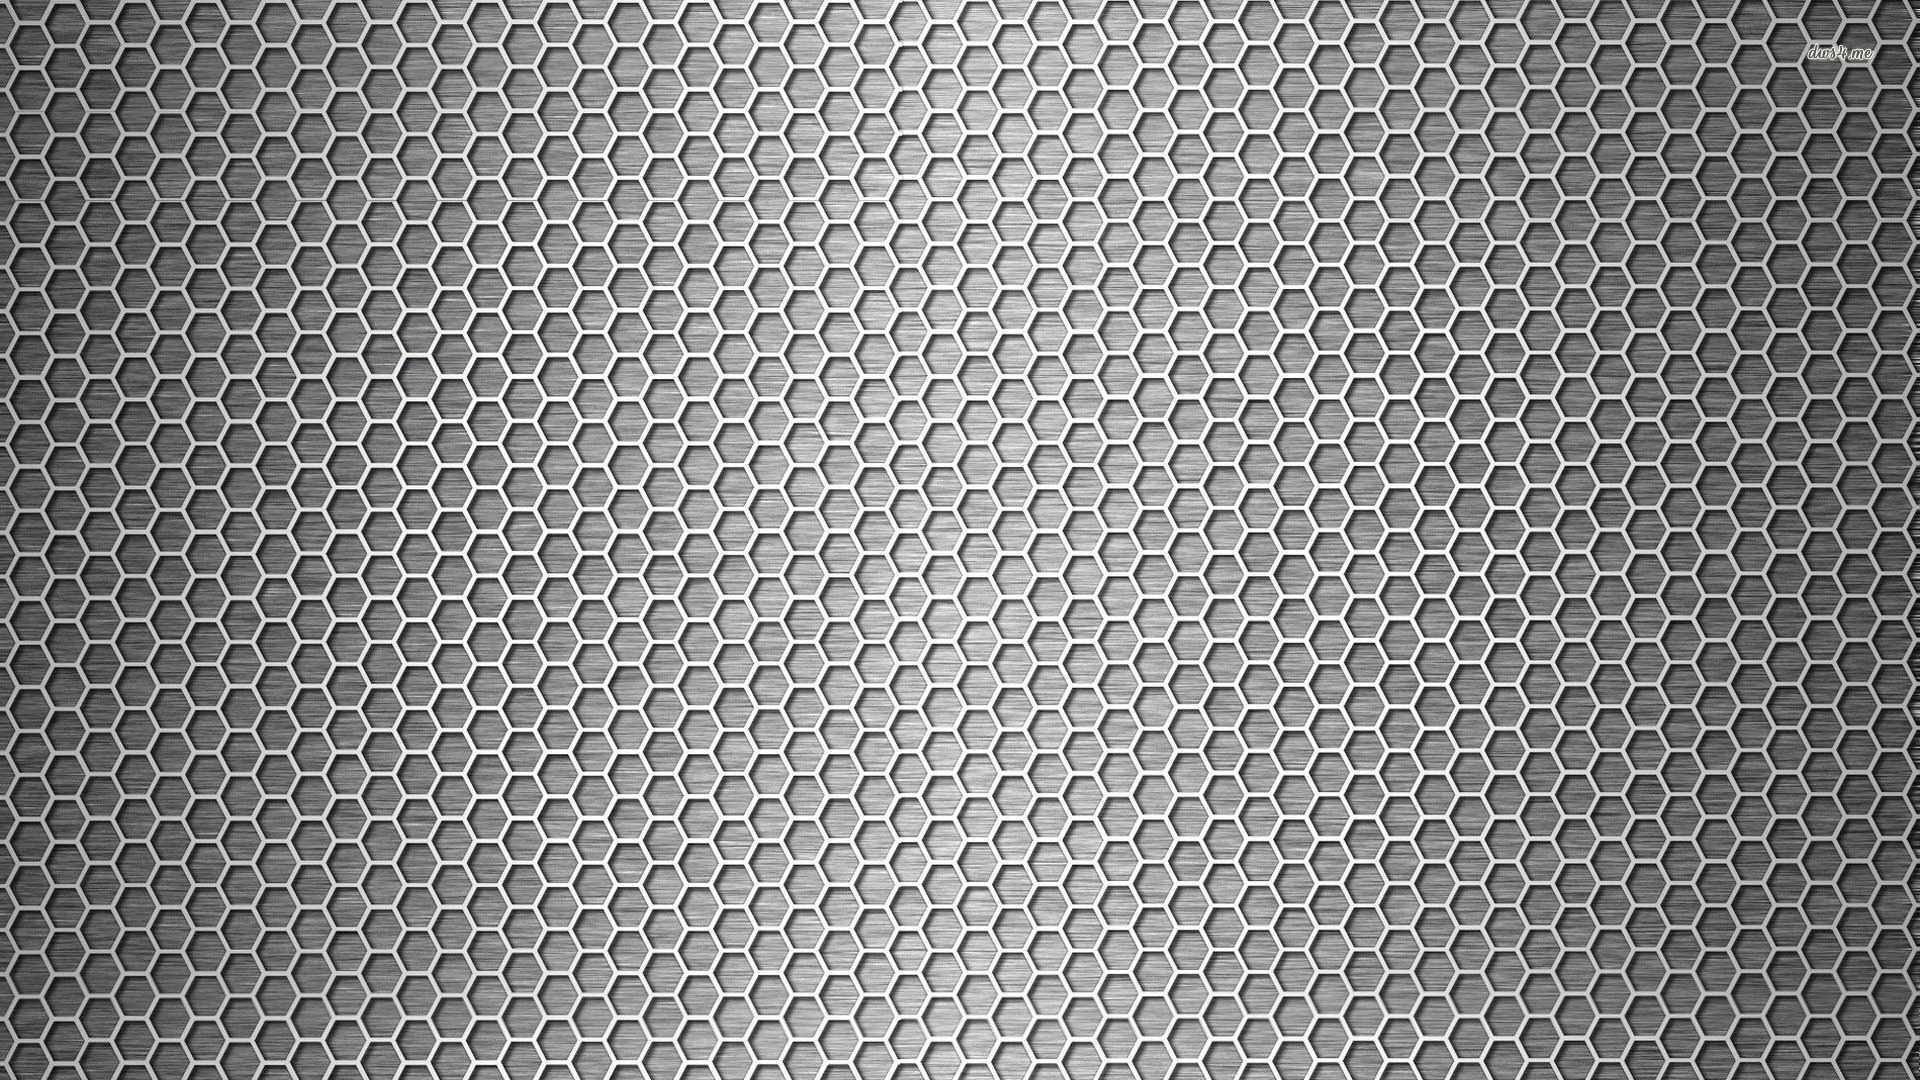 carbon fiber wallpaper (24)